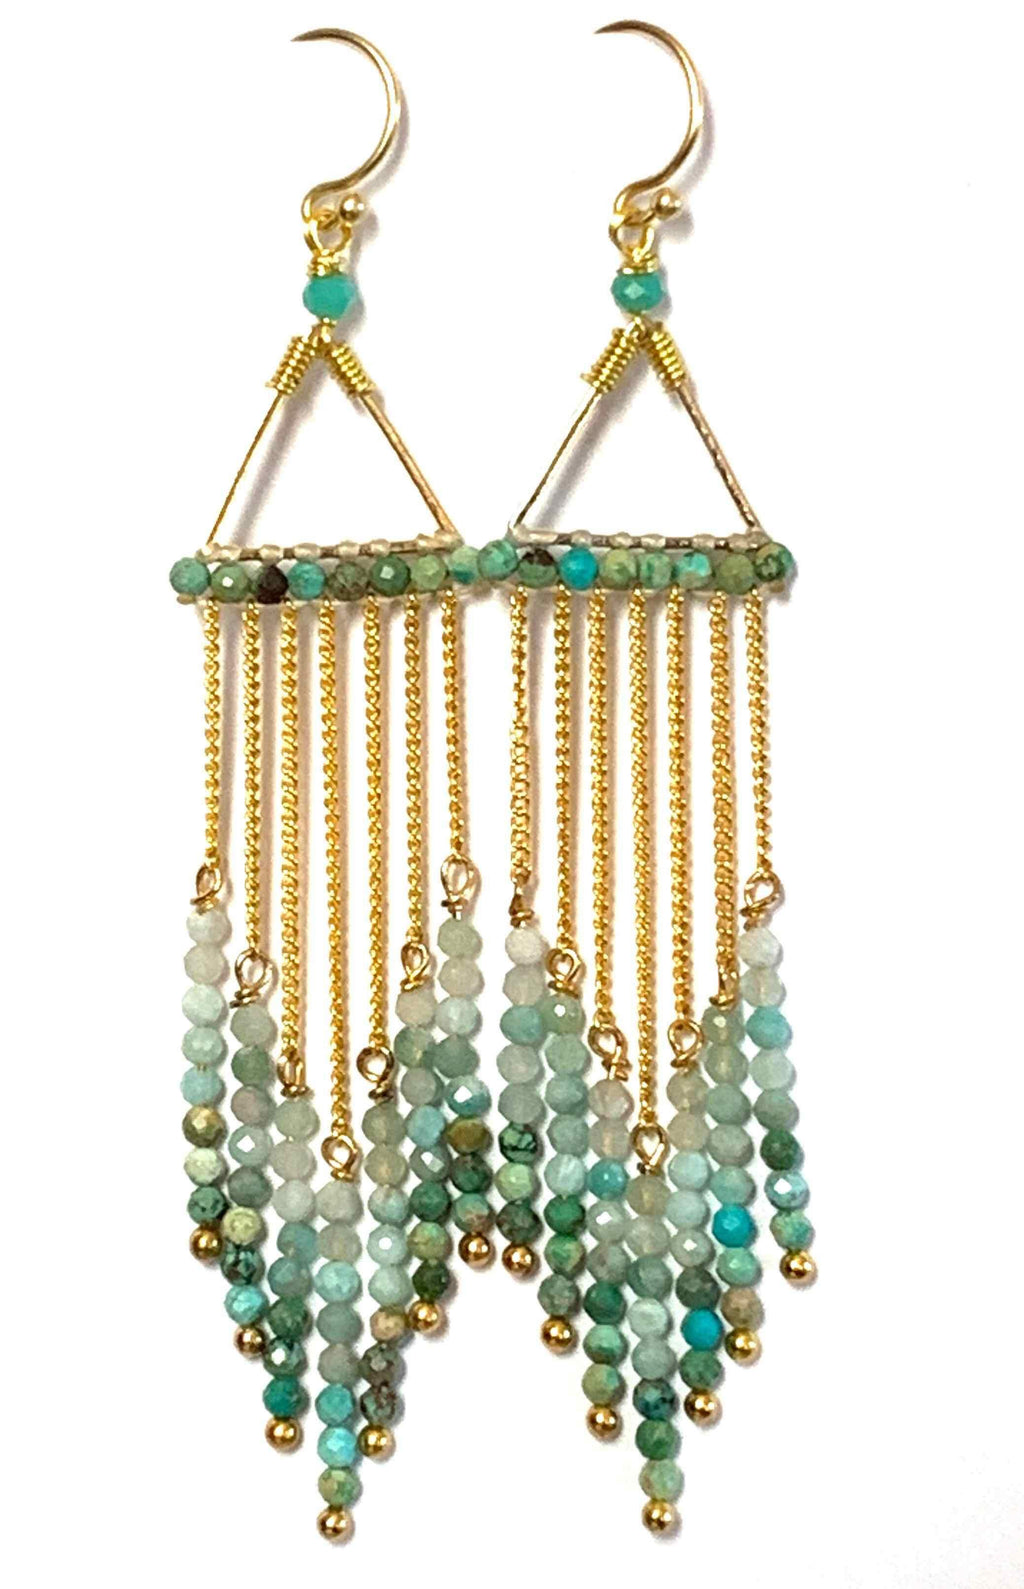 These waterfall statement earrings are a show stopper. They feature beautiful, faceted aquamarine and African turquoise gemstones hanging from a golden triangle in graduated tones from light to dark. They are handmade with love in Thailand. This is a Fairtrade Product.